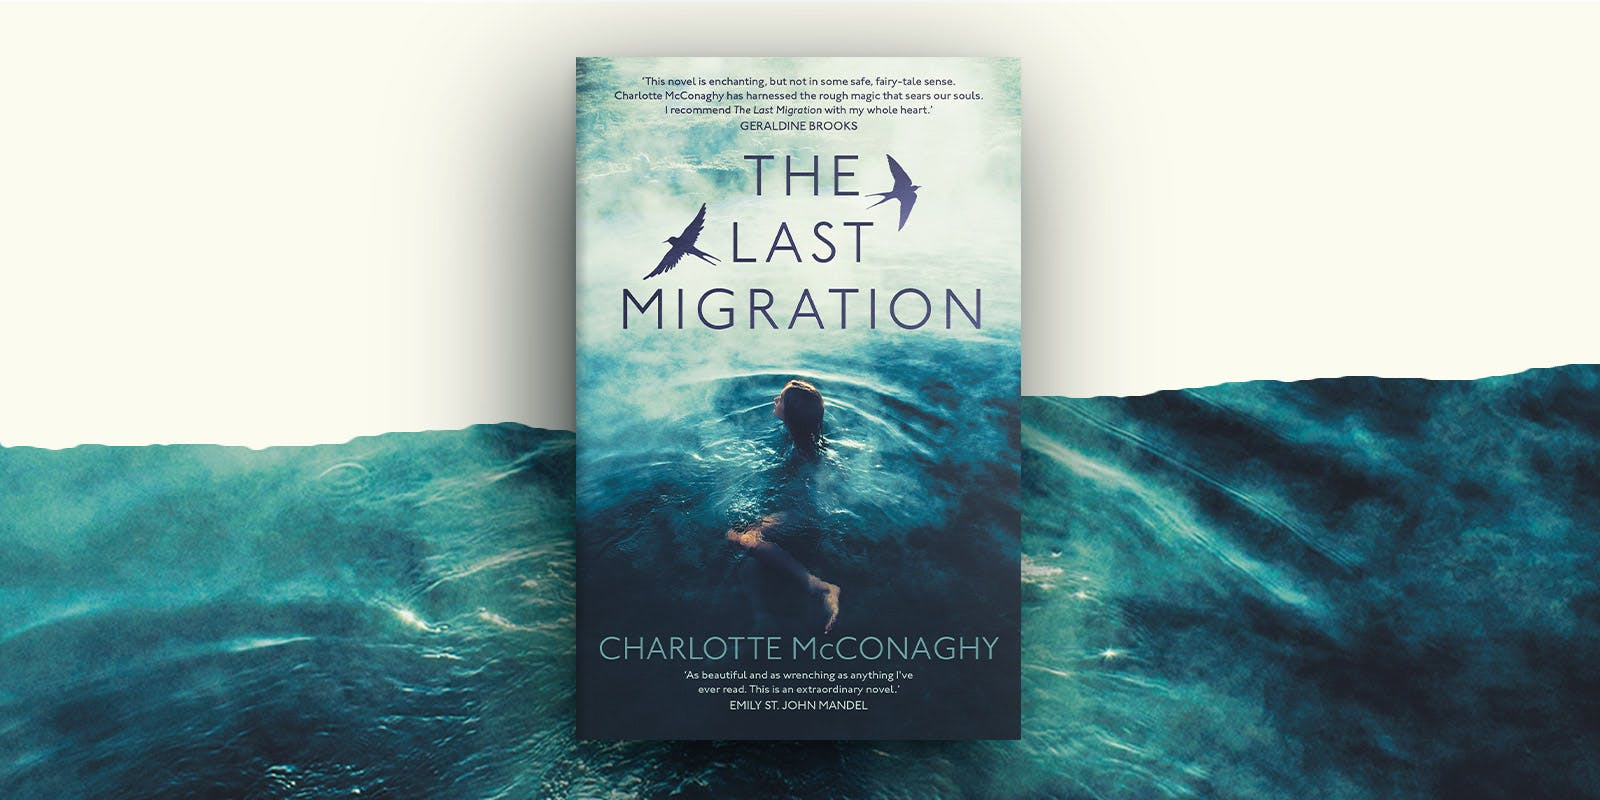 The Last Migration book club notes